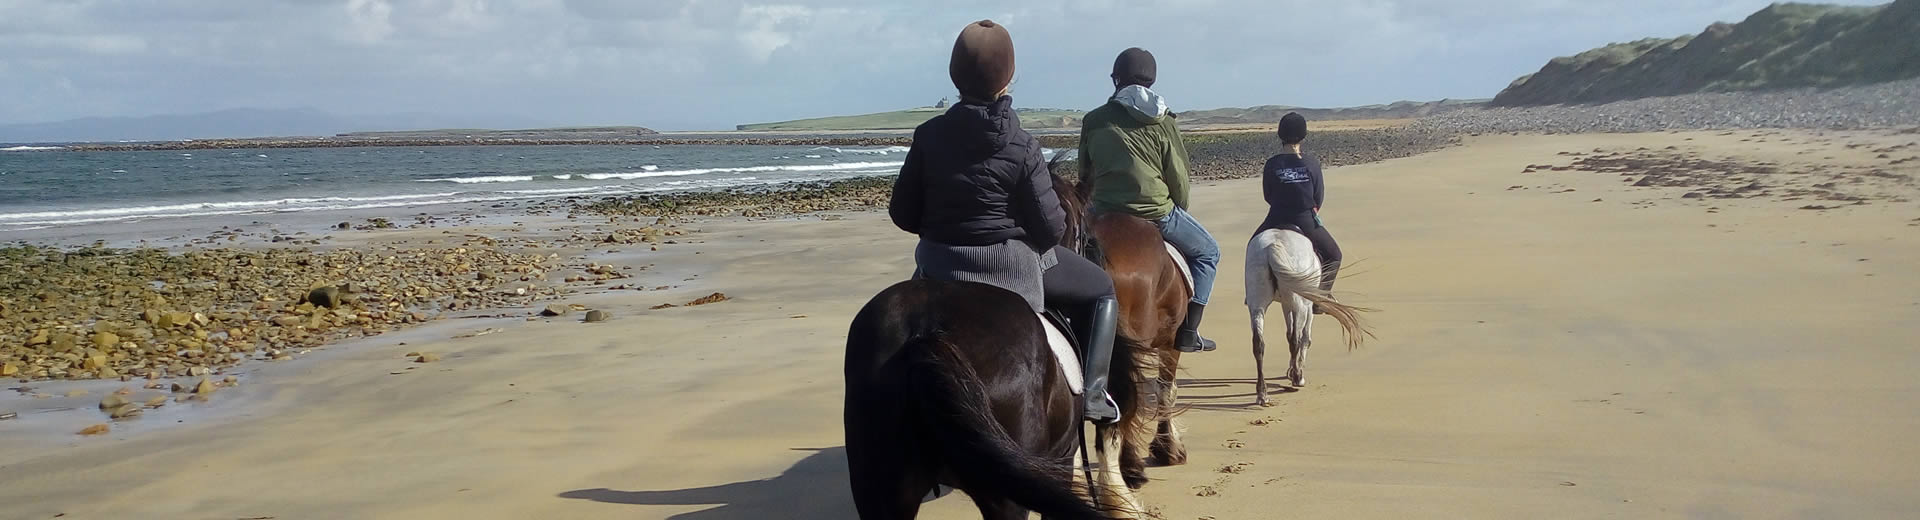 Group out horse riding on a beach in Sligo